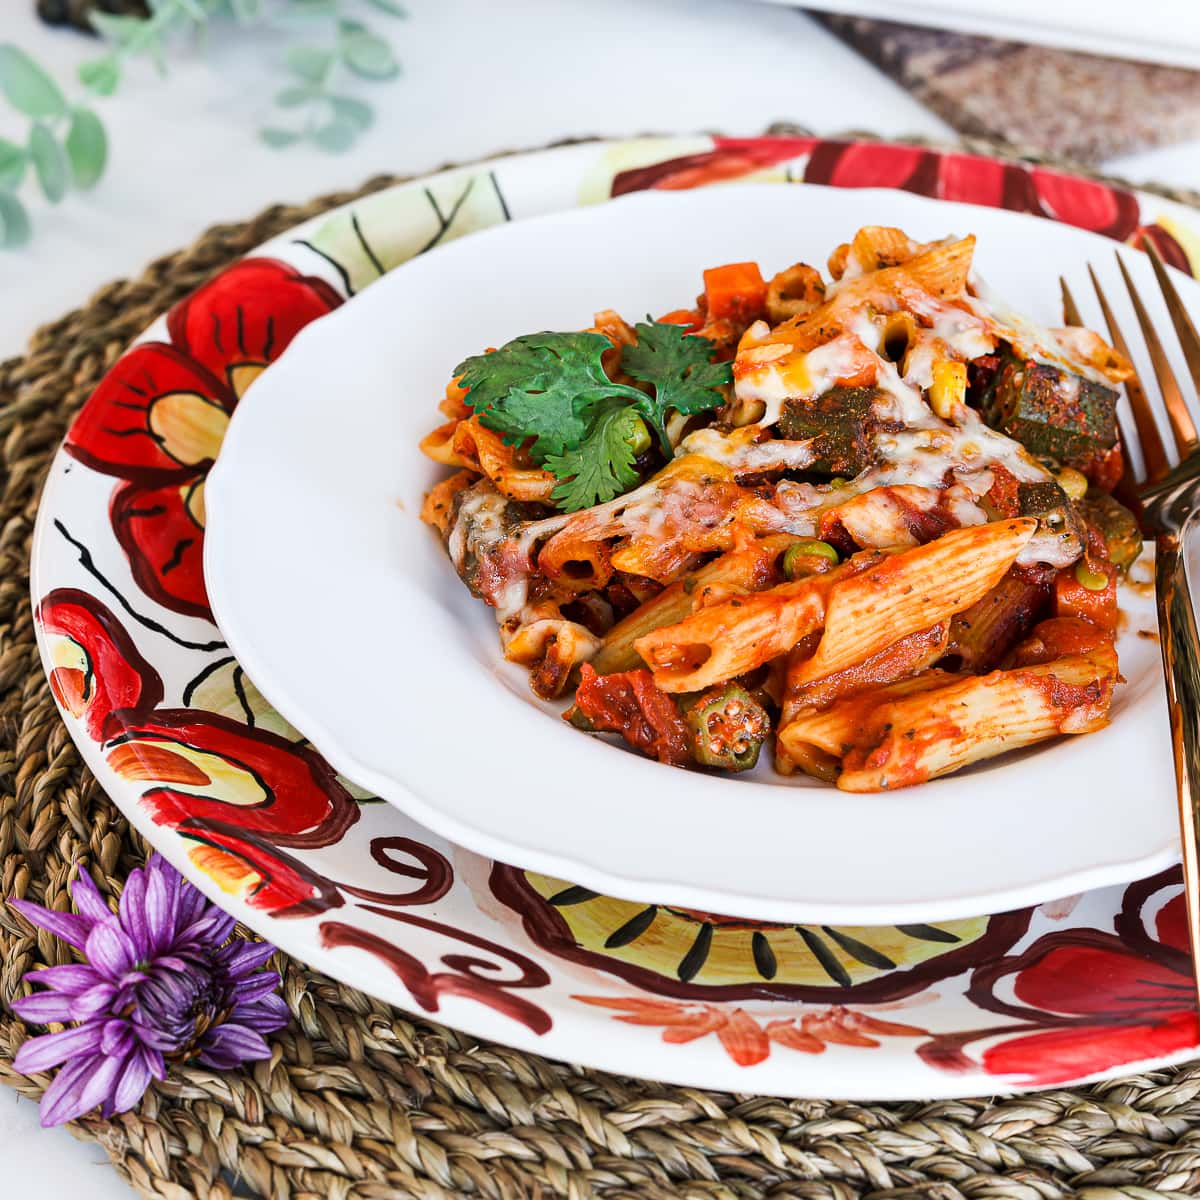 a plate with pasta bake made with penne pasta, okra and mixed vegetables. Garnished with cilantro. Styled on top of a floral plate on a straw mat.